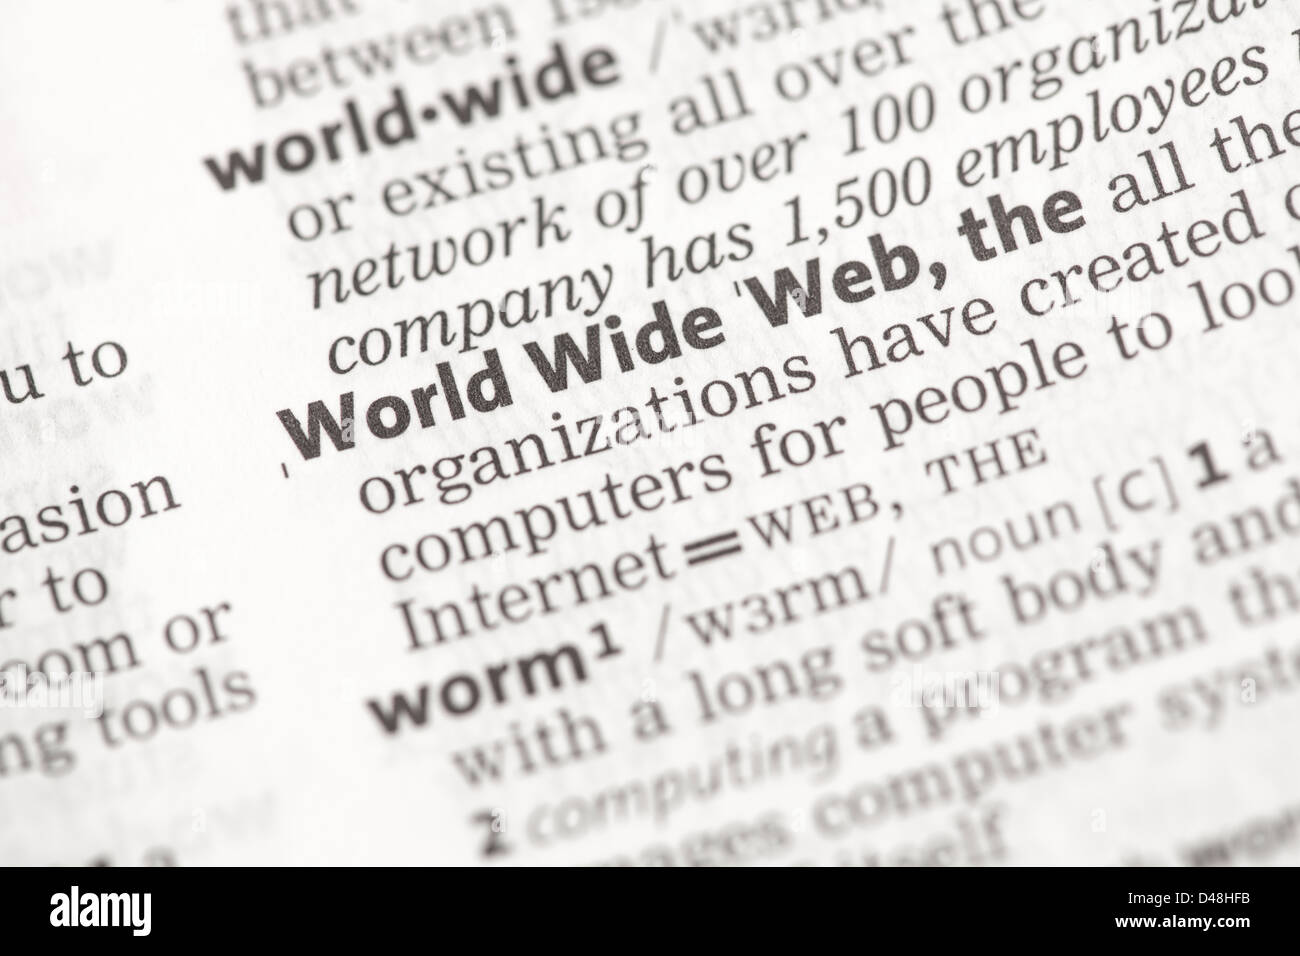 World Wide Web definition - Stock Image